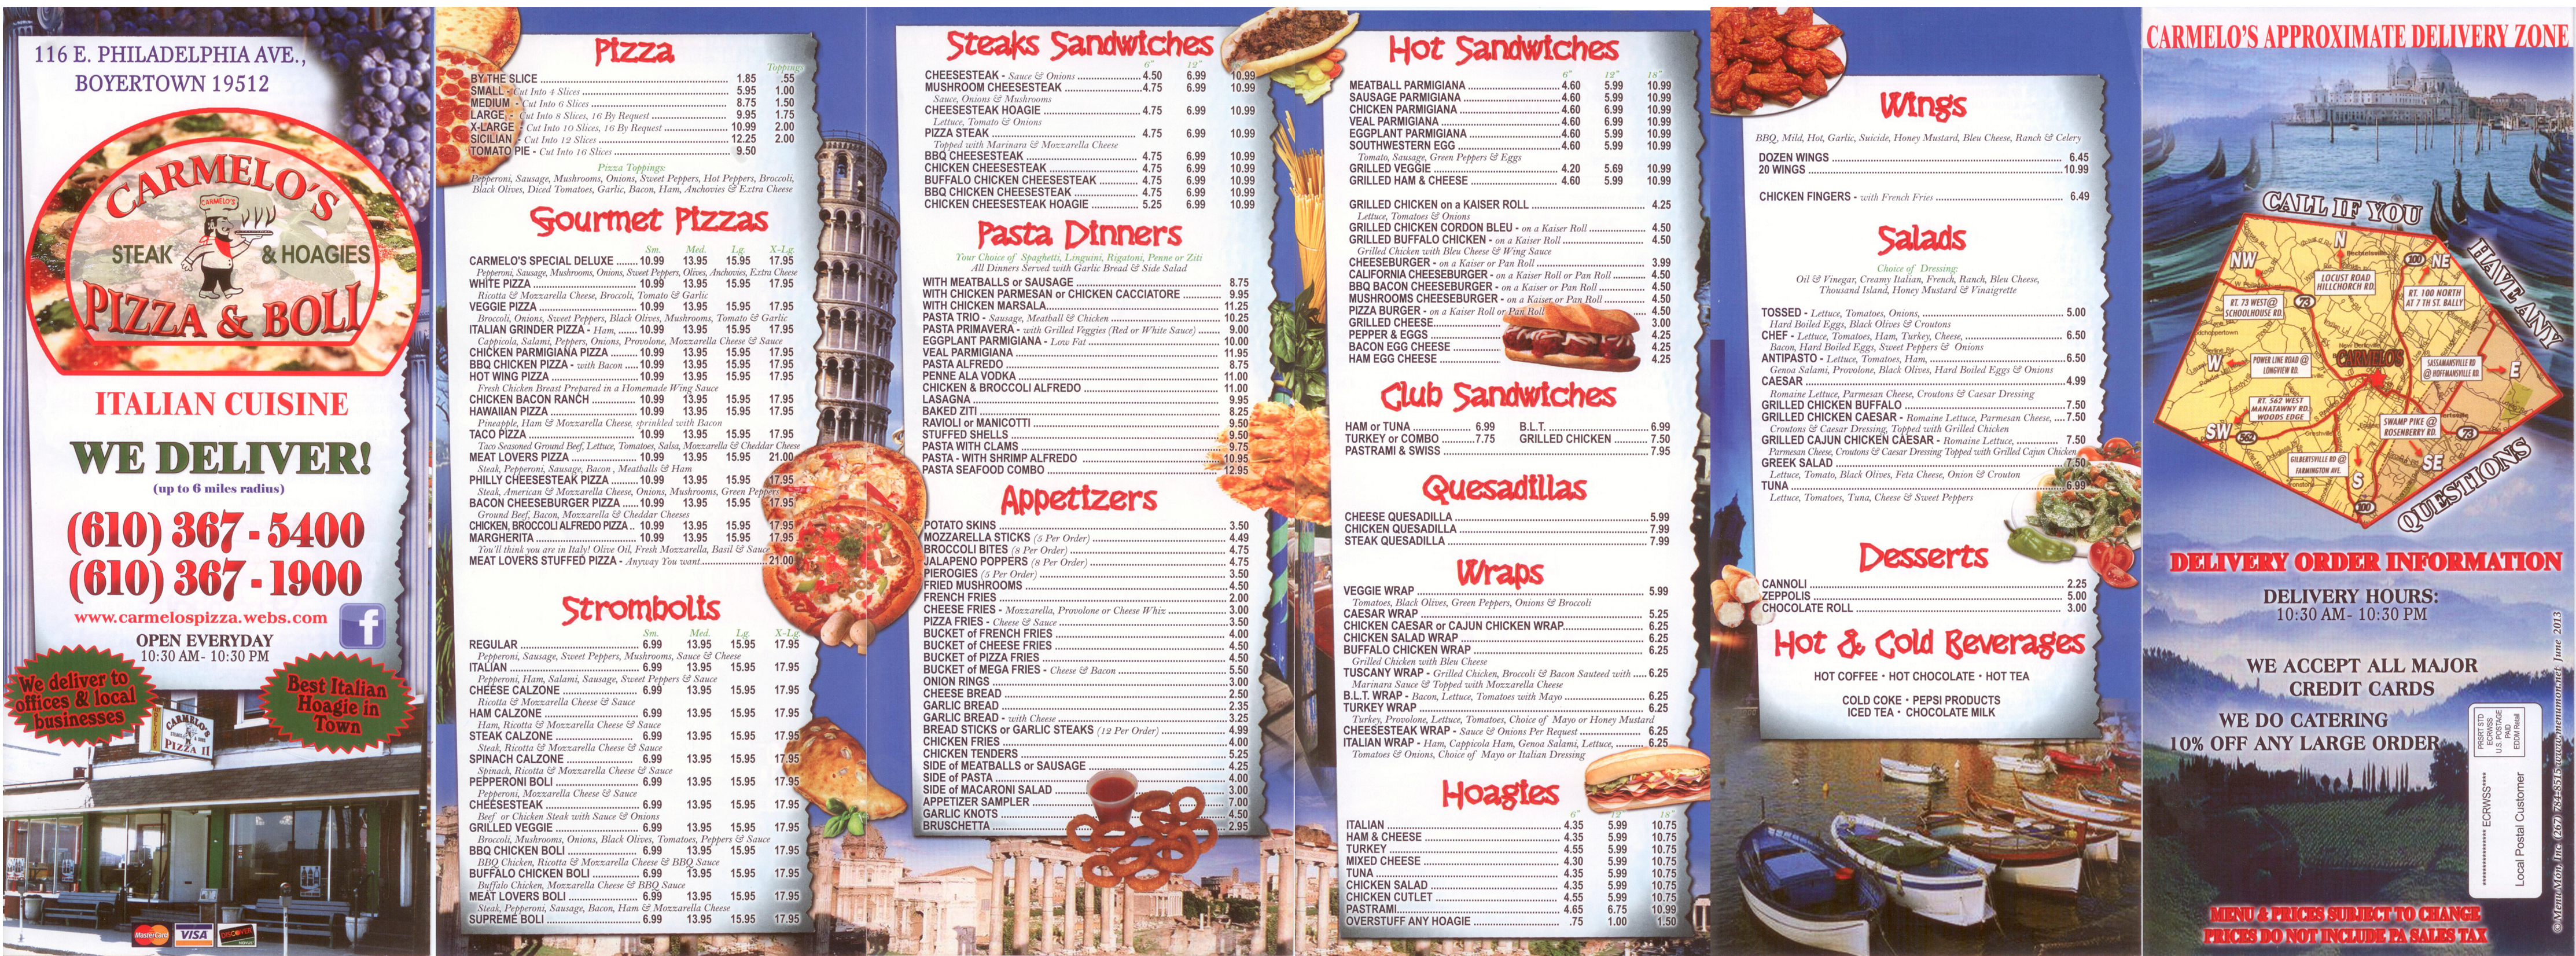 Carmelo's Pizza Menu